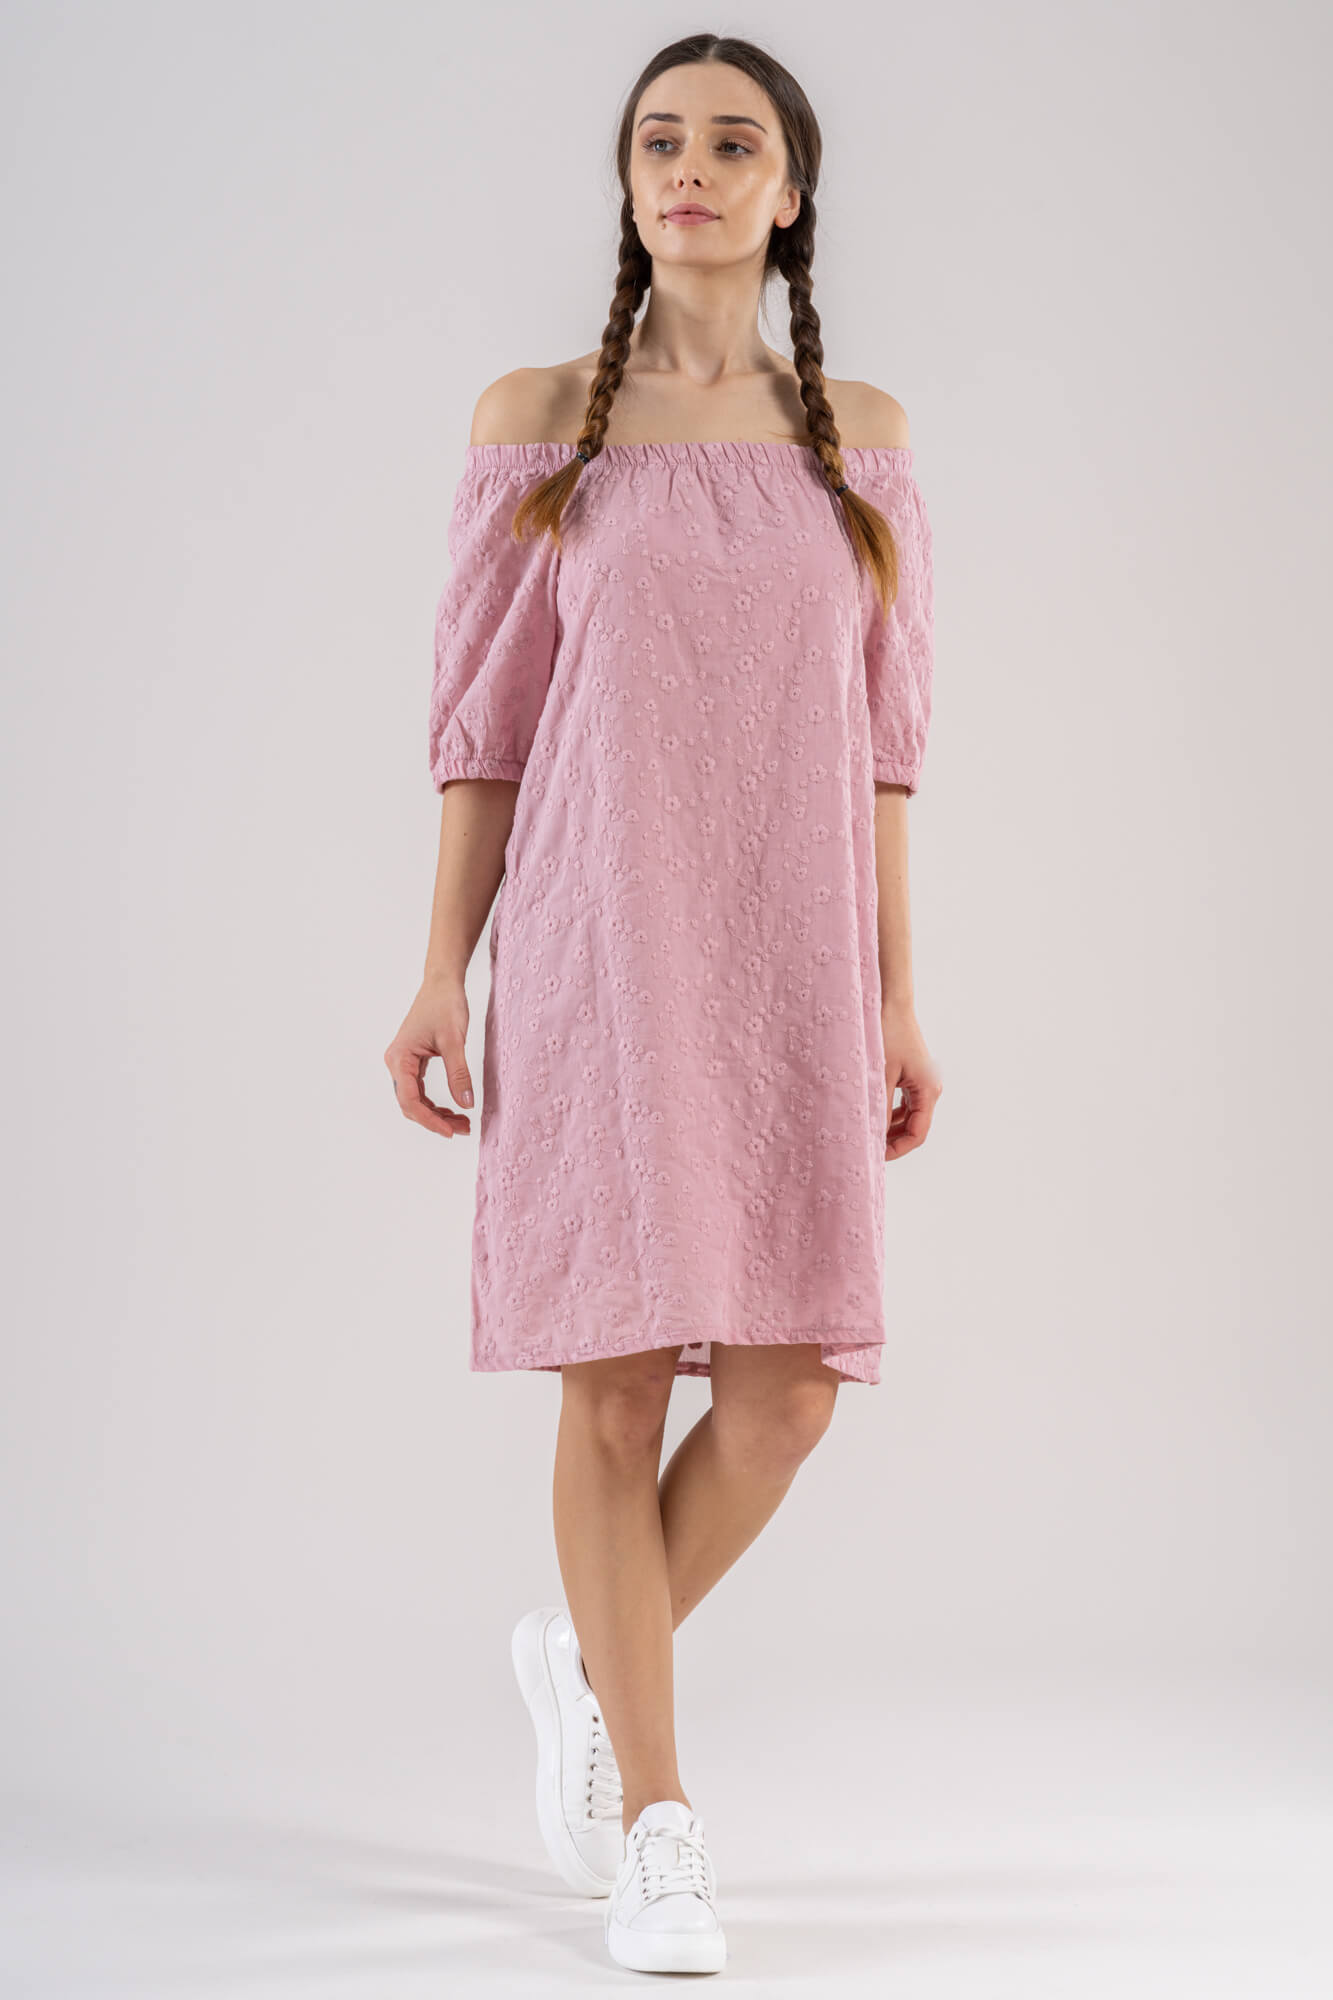 Blush pink embroidered cotton off the shoulder knee length short dress 3/4 sleeves